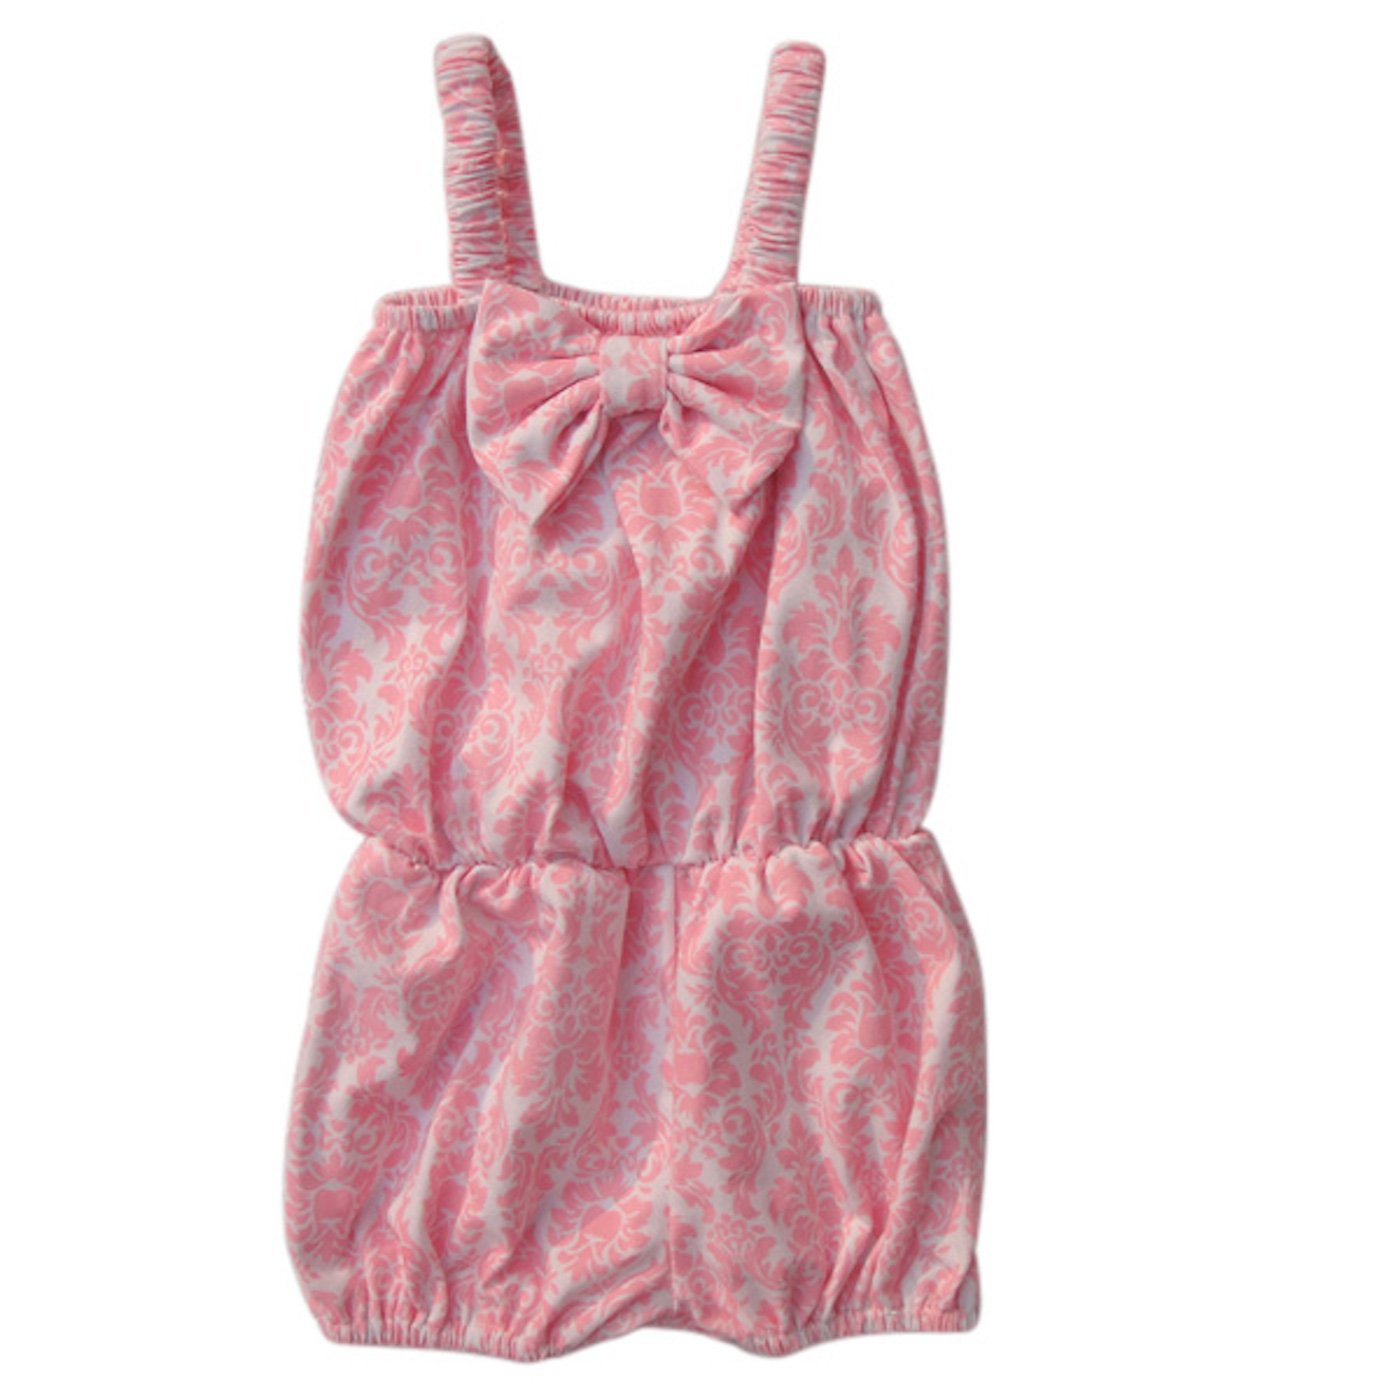 b4fd0faed Amazon.com  Unique Baby Girls Damask Romper  Clothing